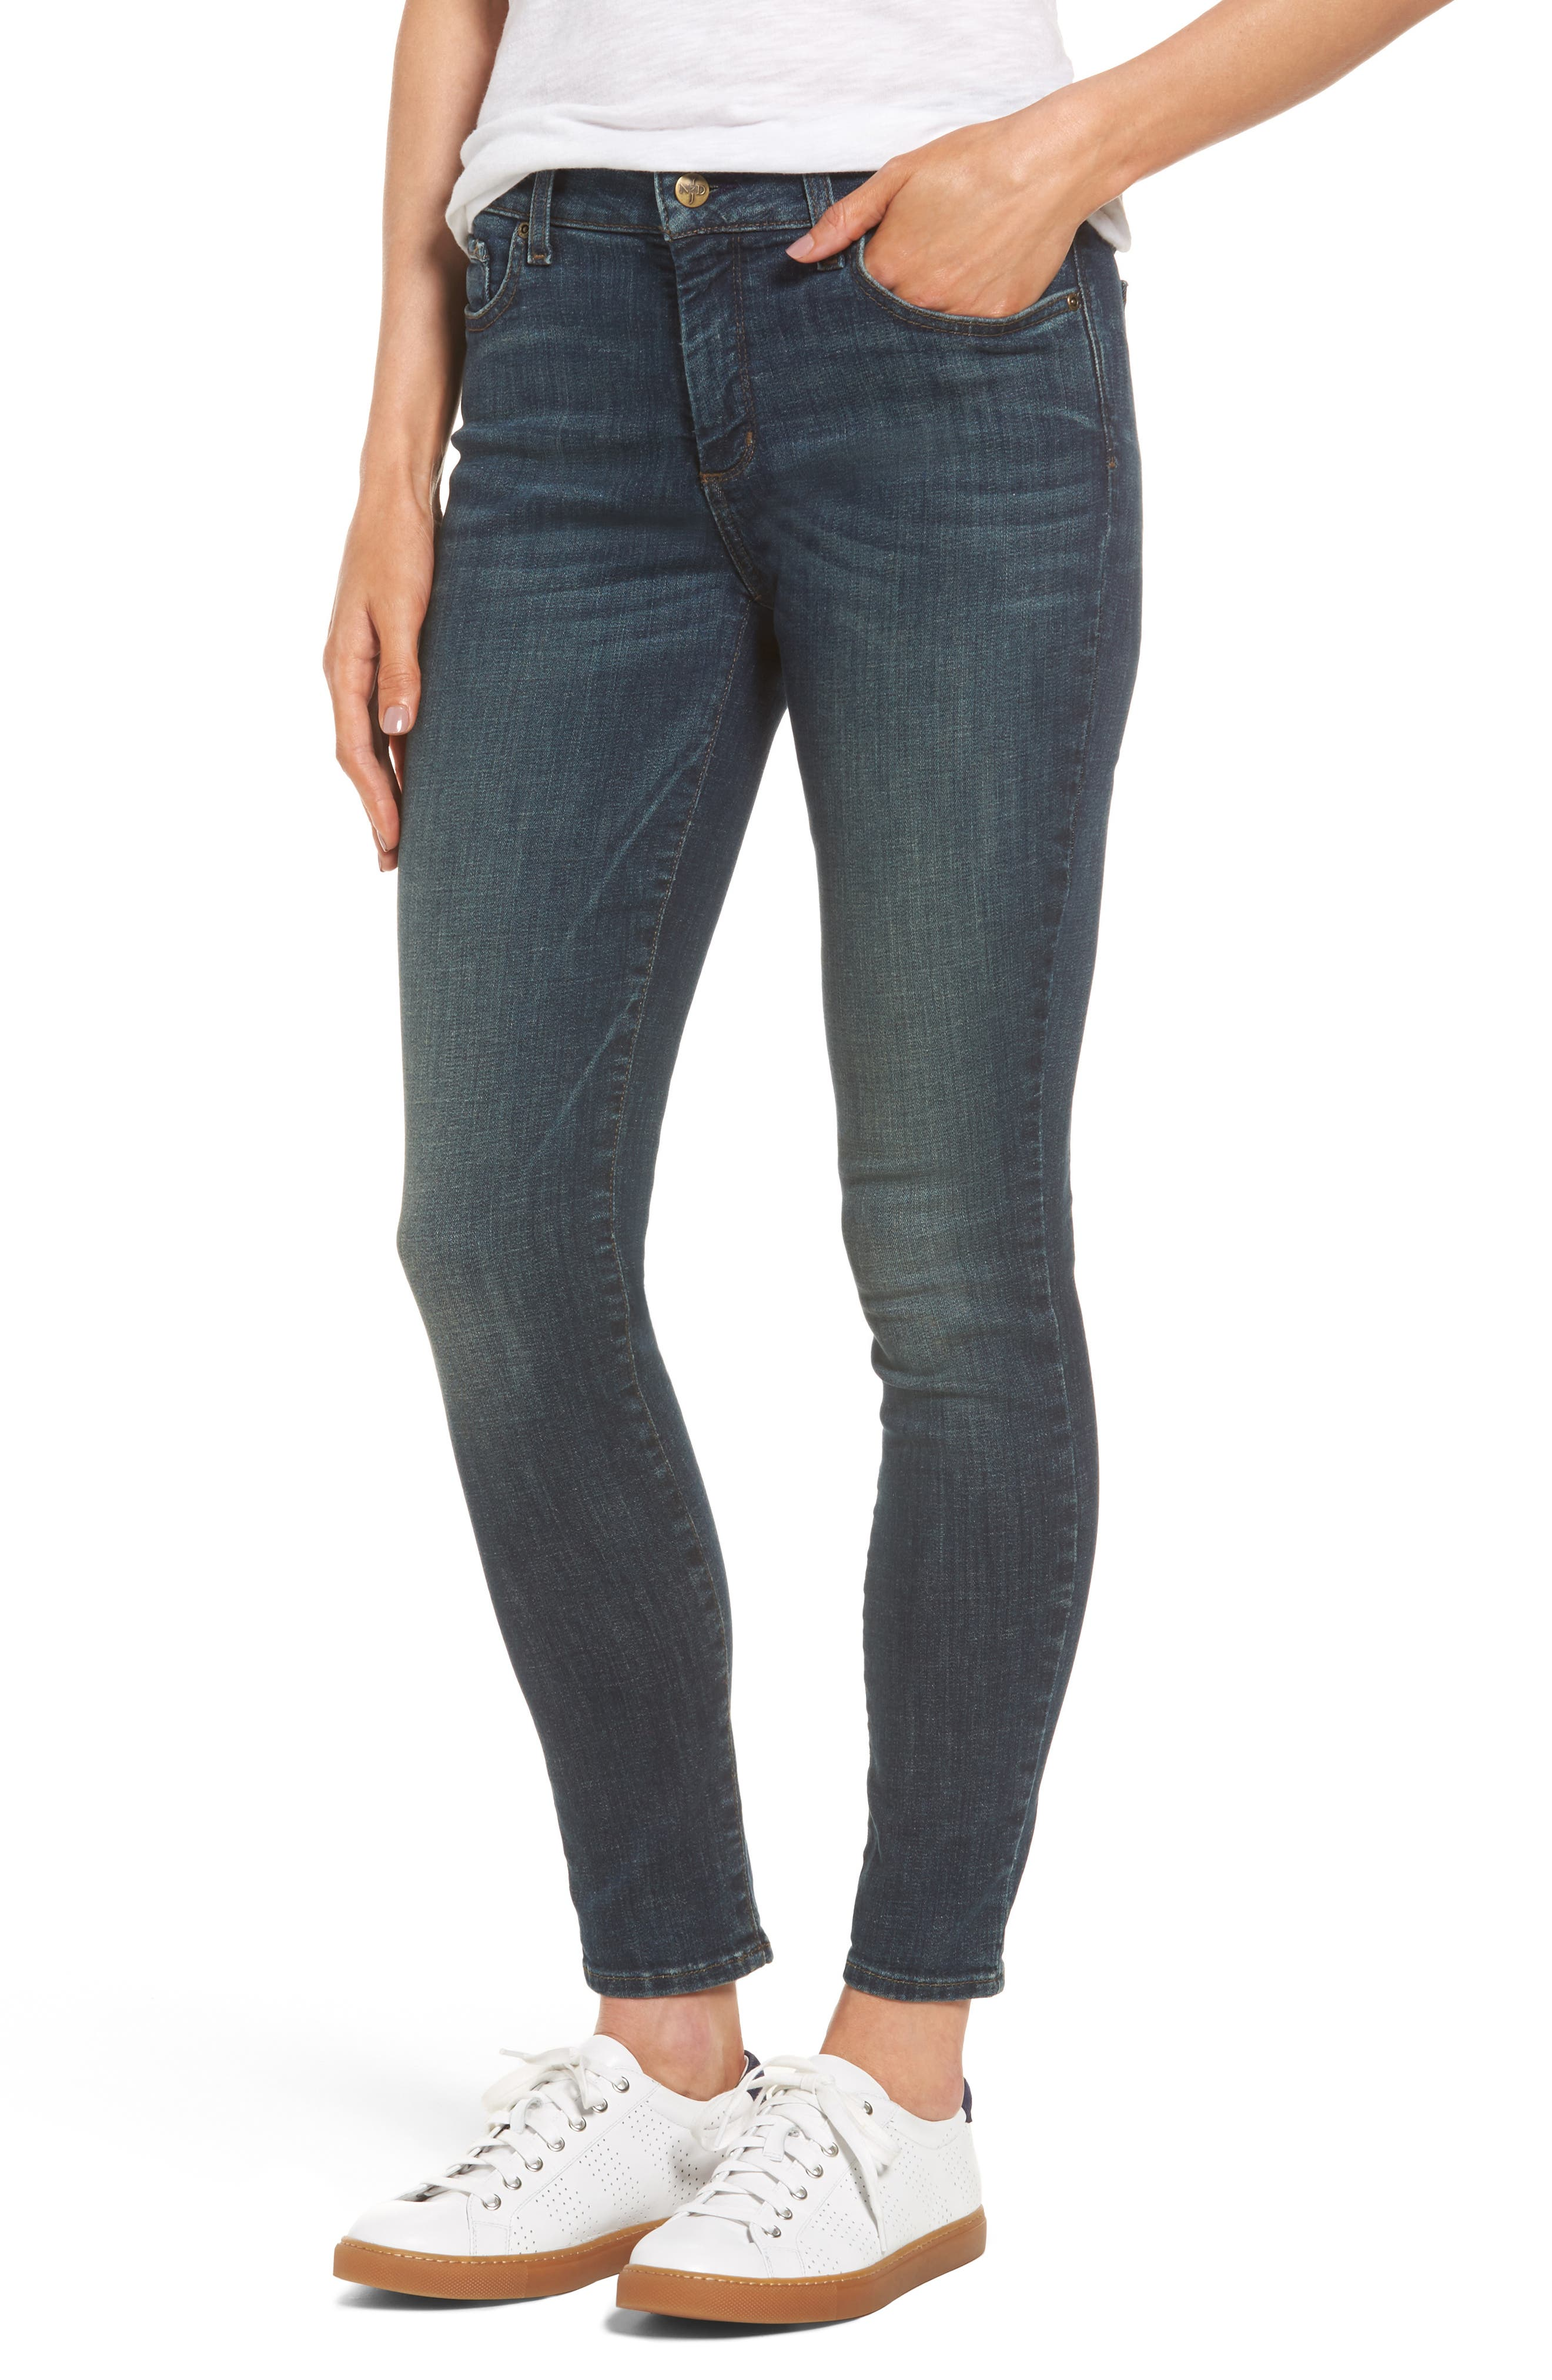 Ami Stretch Skinny Jeans,                             Main thumbnail 1, color,                             420